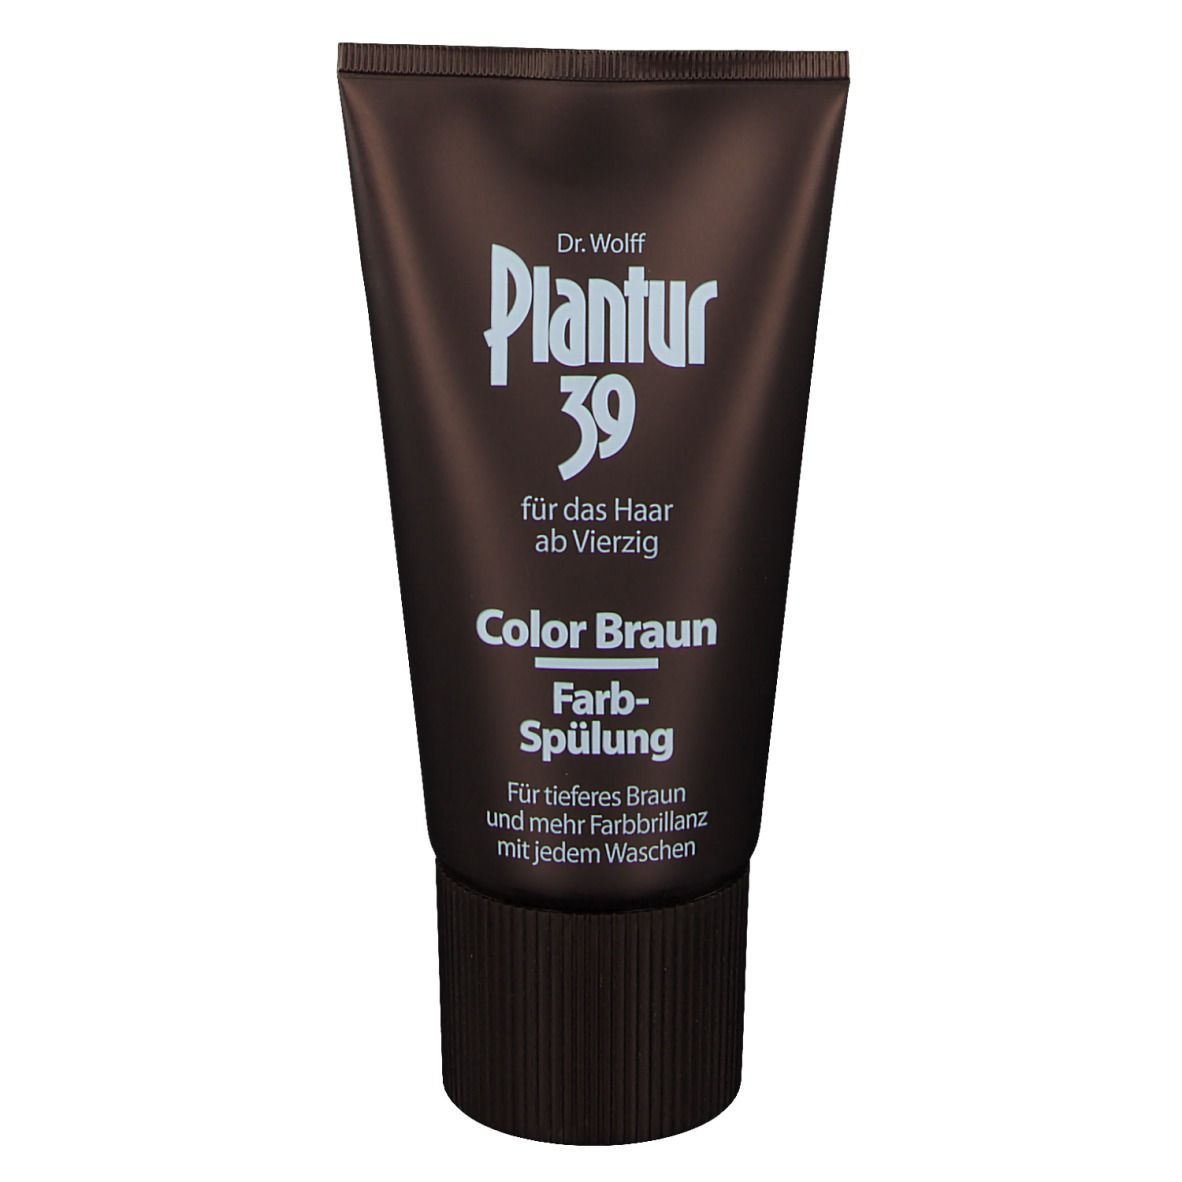 Image of Plantur 39 Color Braun Pflegespülung